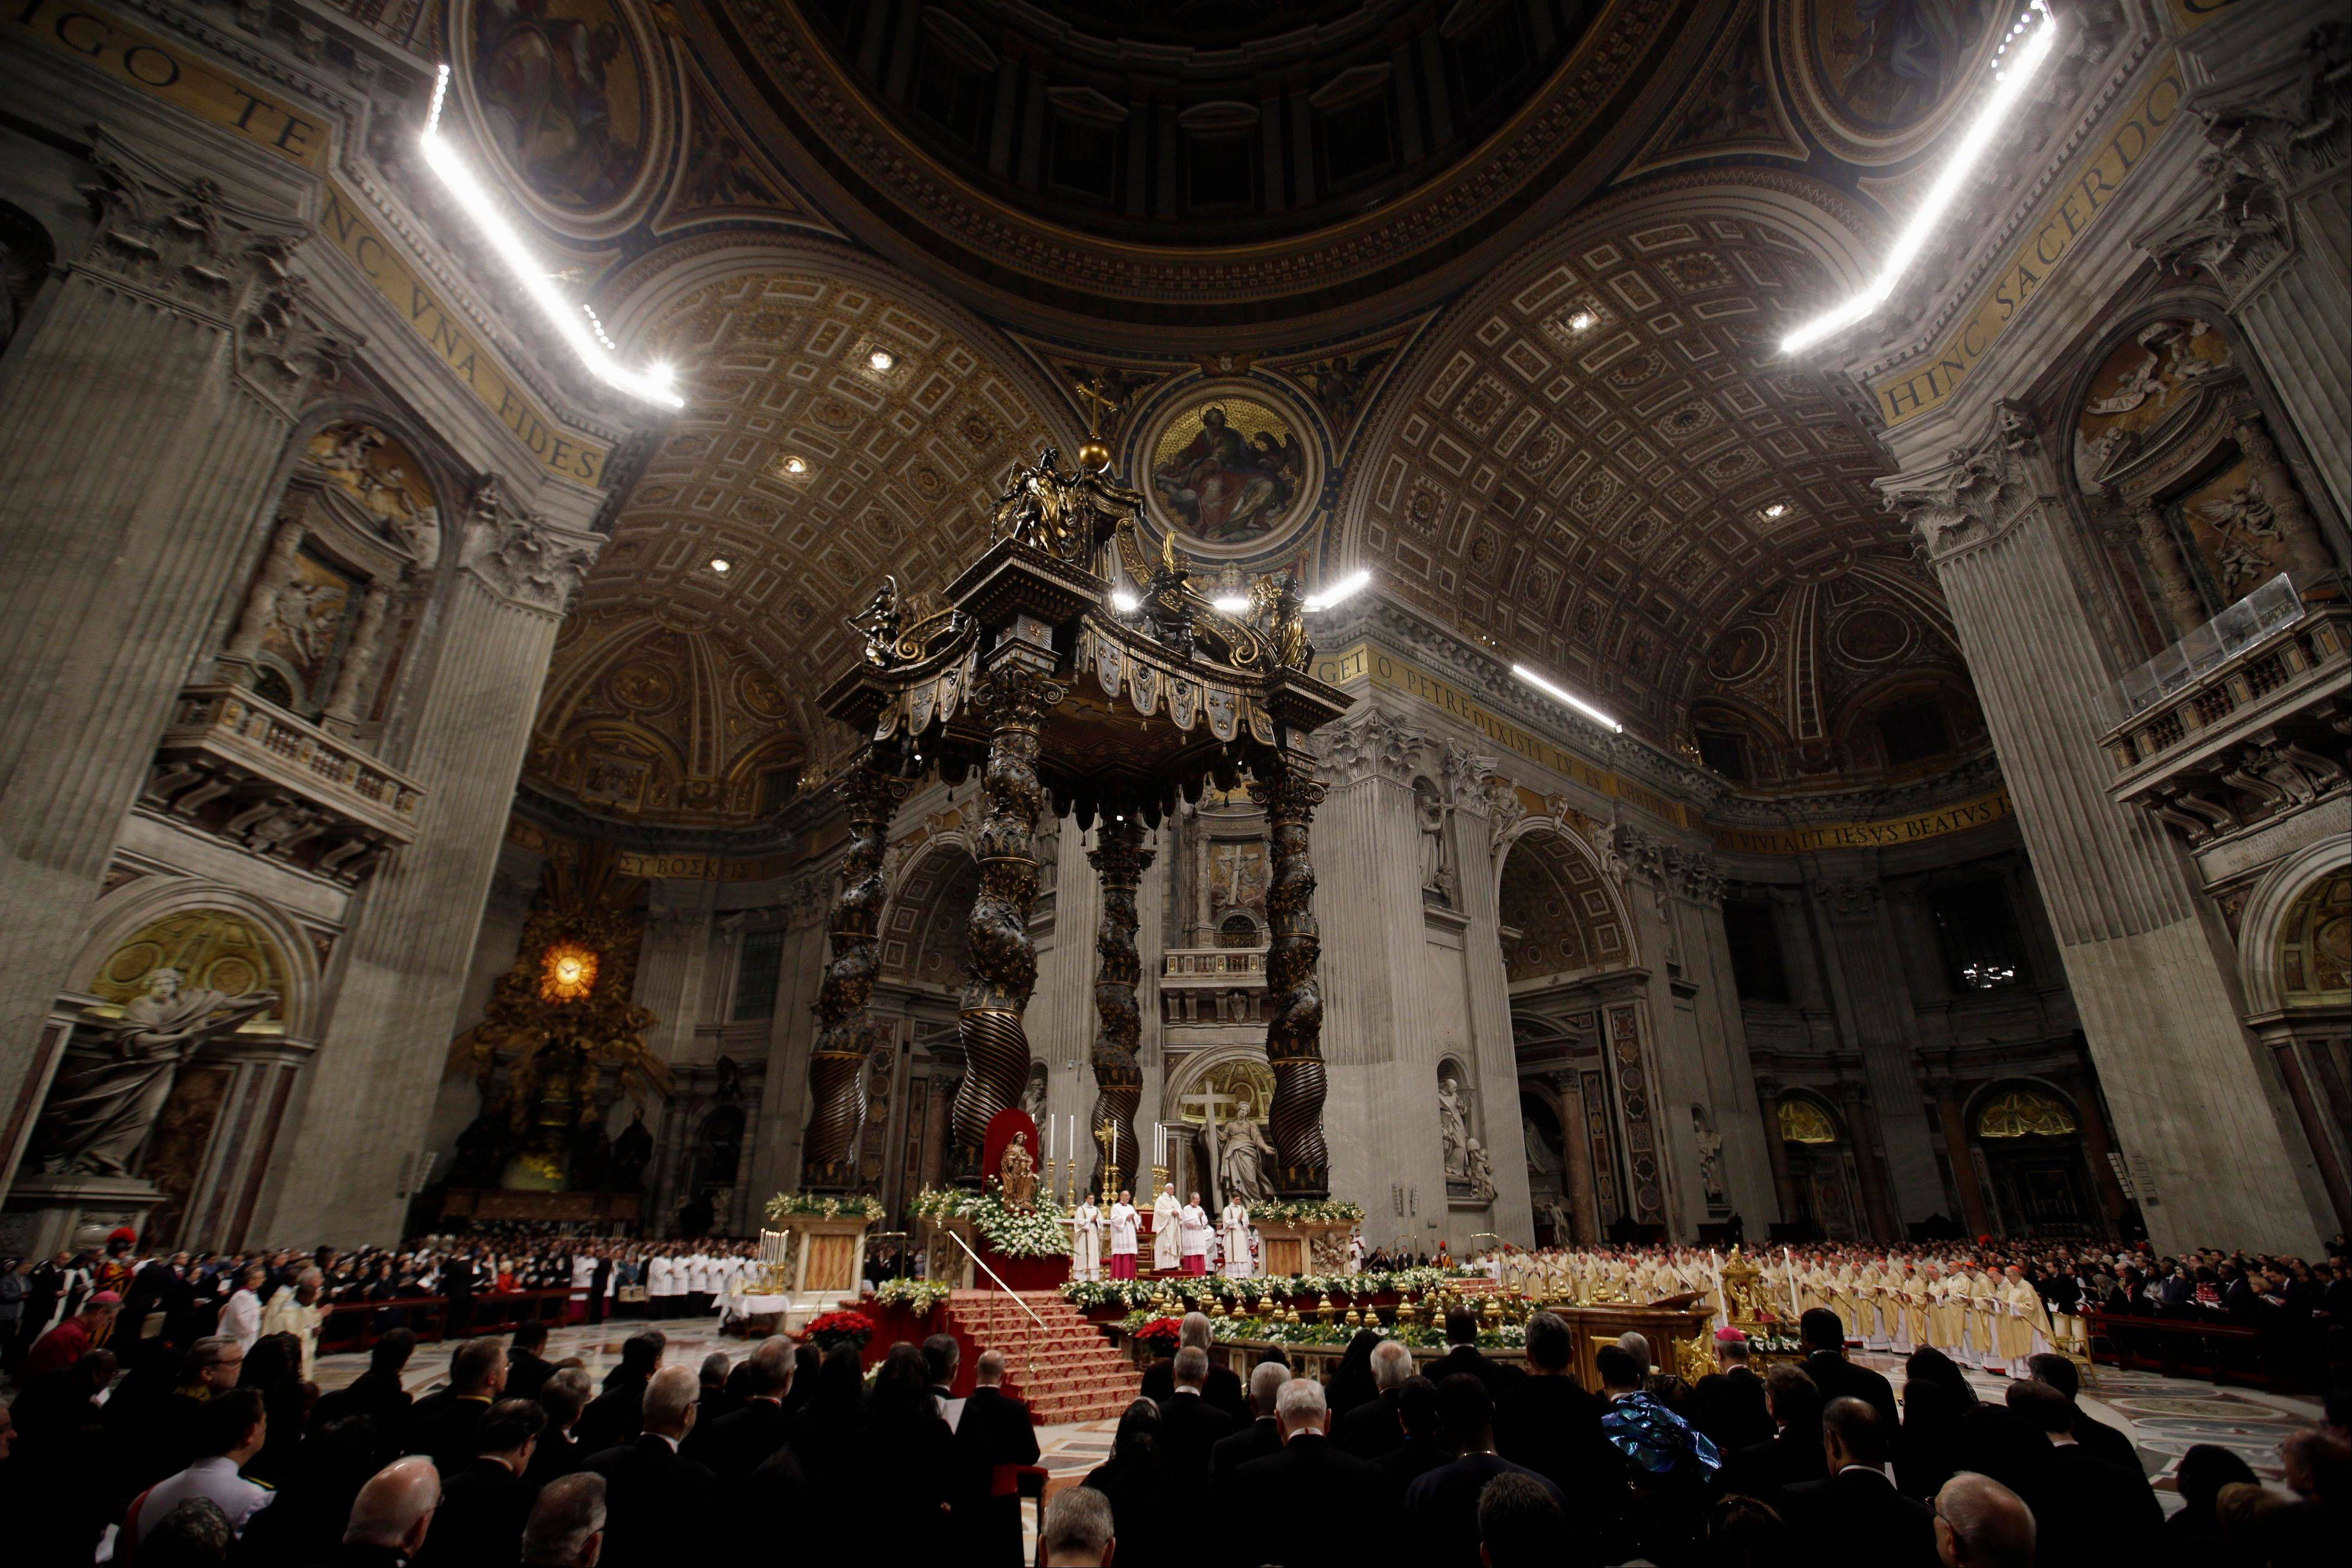 Pope Francis celebrates the Christmas Eve Mass in St. Peter's Basilica at the Vatican, Tuesday, Dec. 24, 2013. Pope Francis has begun celebrating his first Christmas Eve Mass as pontiff by placing a baby Jesus statue in a replica of a manger in St. Peter's Basilica.